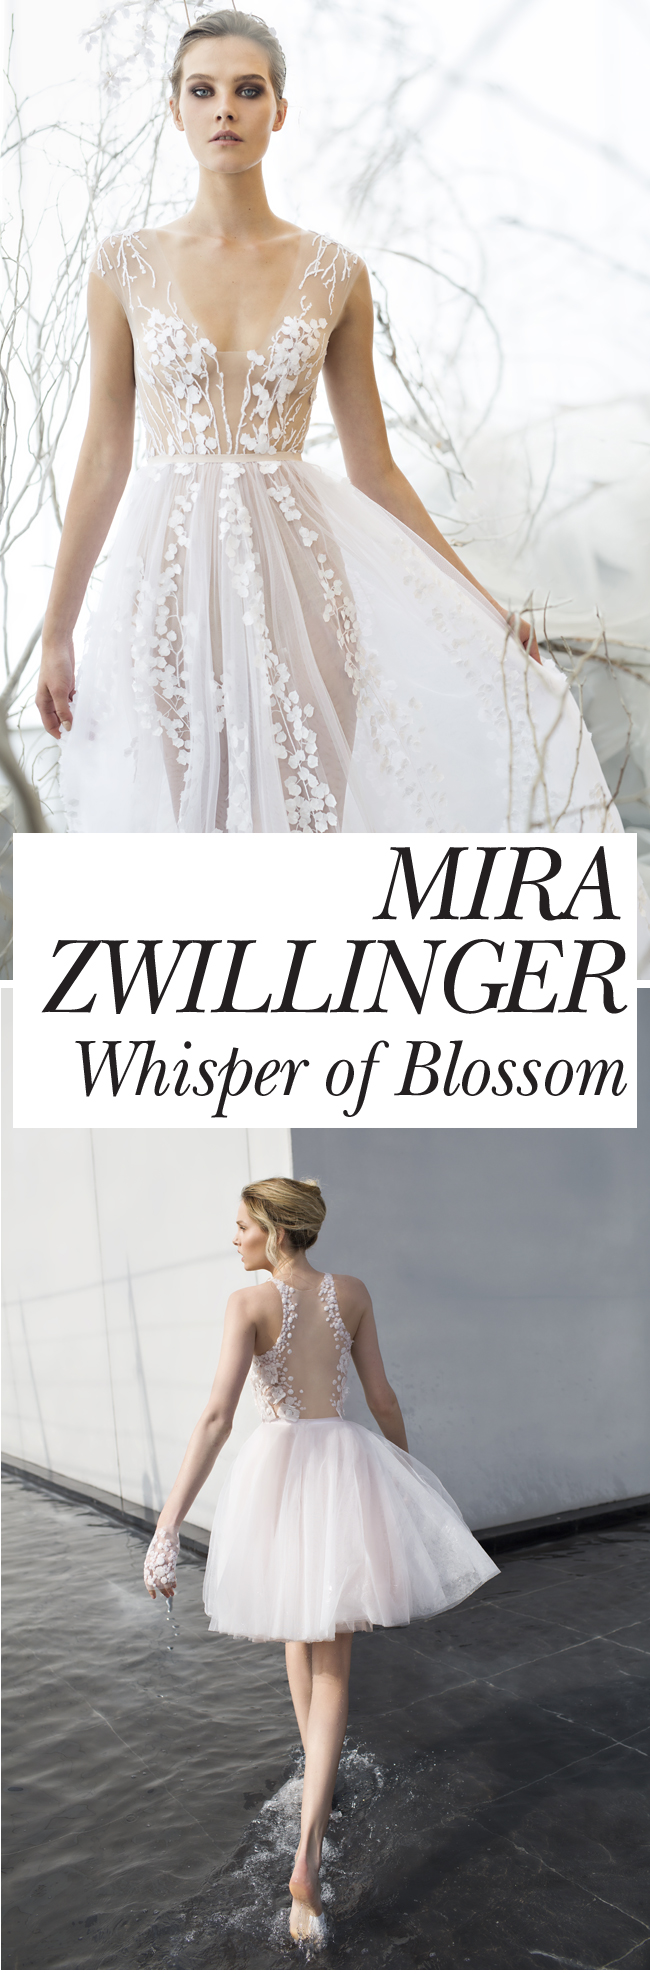 MIra Zwillinger, Whisper Bloom, Bridal Collection, Perfect wedding Magazine, Perfect wedding Blog, Floral Applique, Wedding Gowns